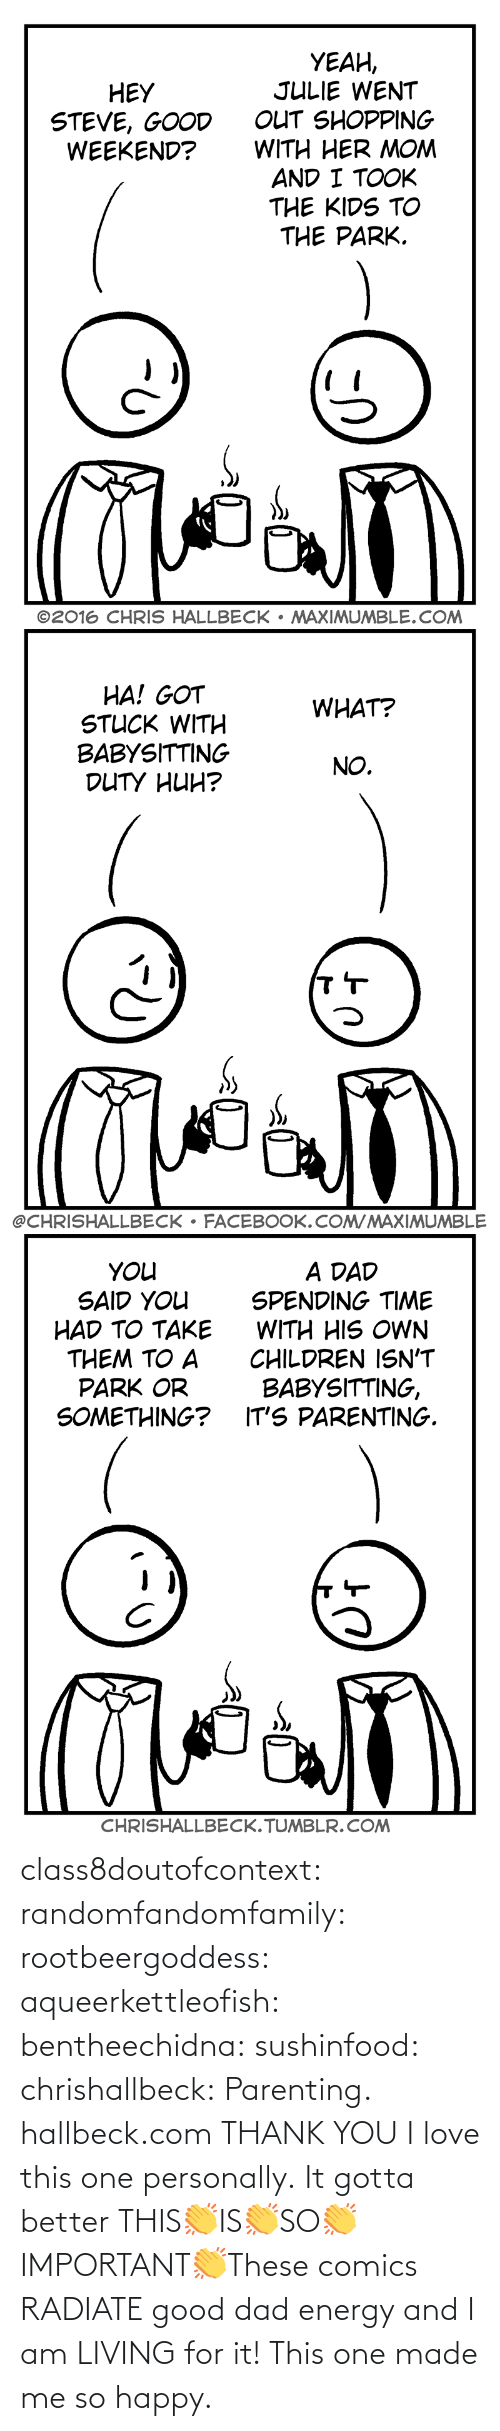 Dad, Energy, and Love: class8doutofcontext: randomfandomfamily:  rootbeergoddess:  aqueerkettleofish:  bentheechidna:  sushinfood:  chrishallbeck:  Parenting. hallbeck.com  THANK YOU  I love this one personally.    It gotta better   THIS👏IS👏SO👏IMPORTANT👏These comics RADIATE good dad energy and I am LIVING for it!    This one made me so happy.